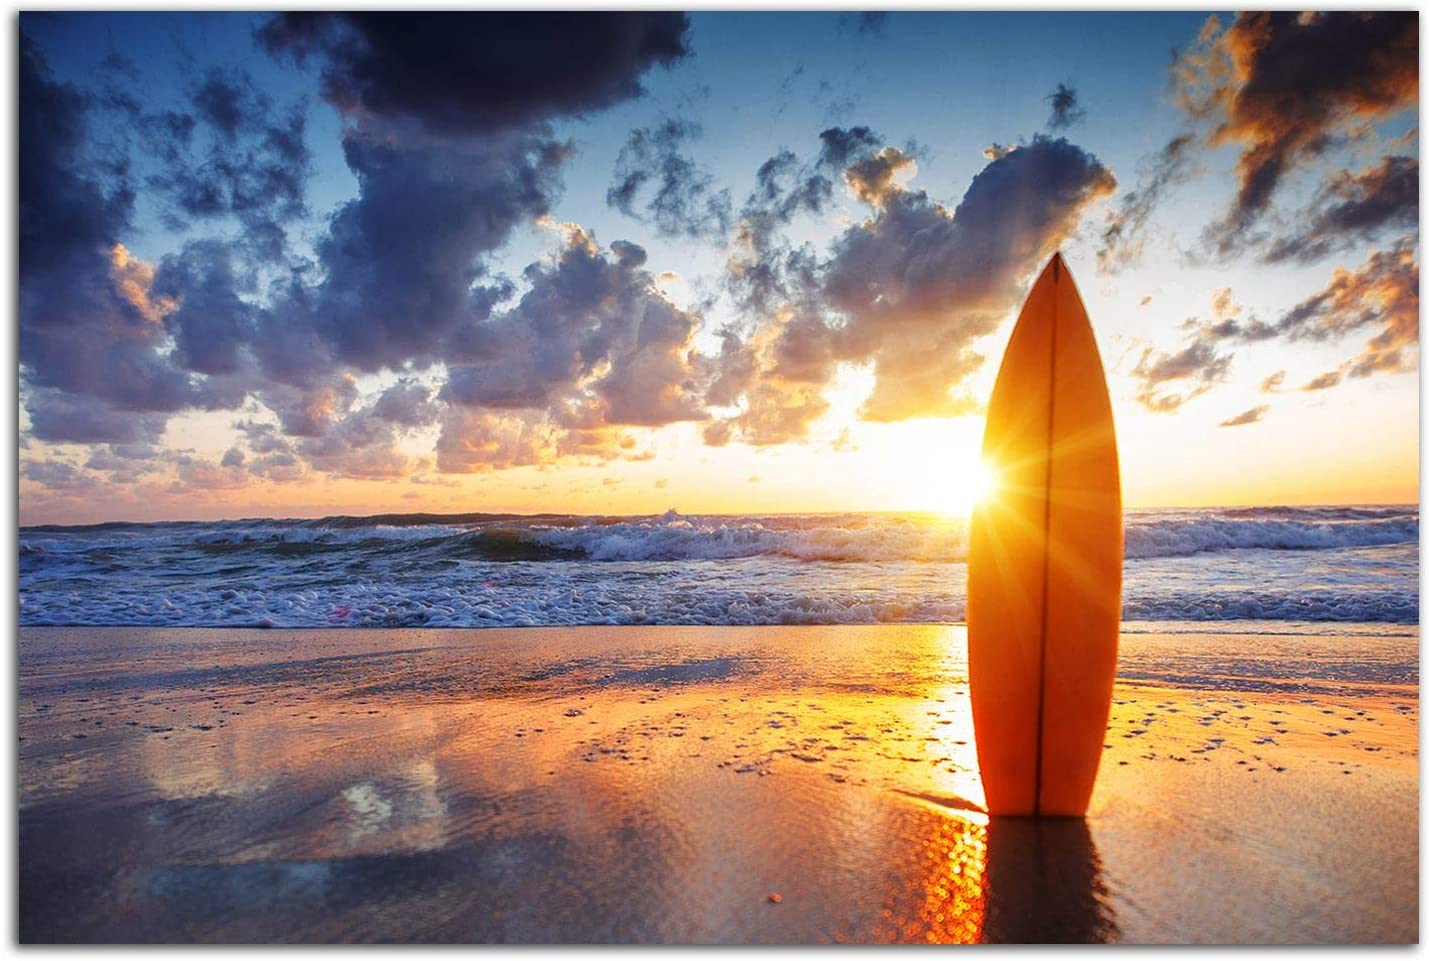 Startonight Glass Wall Art - Sunset on The Beach and Surfing Decor - Tempered Acrylic Glass Artwork 24 x 36 Inches